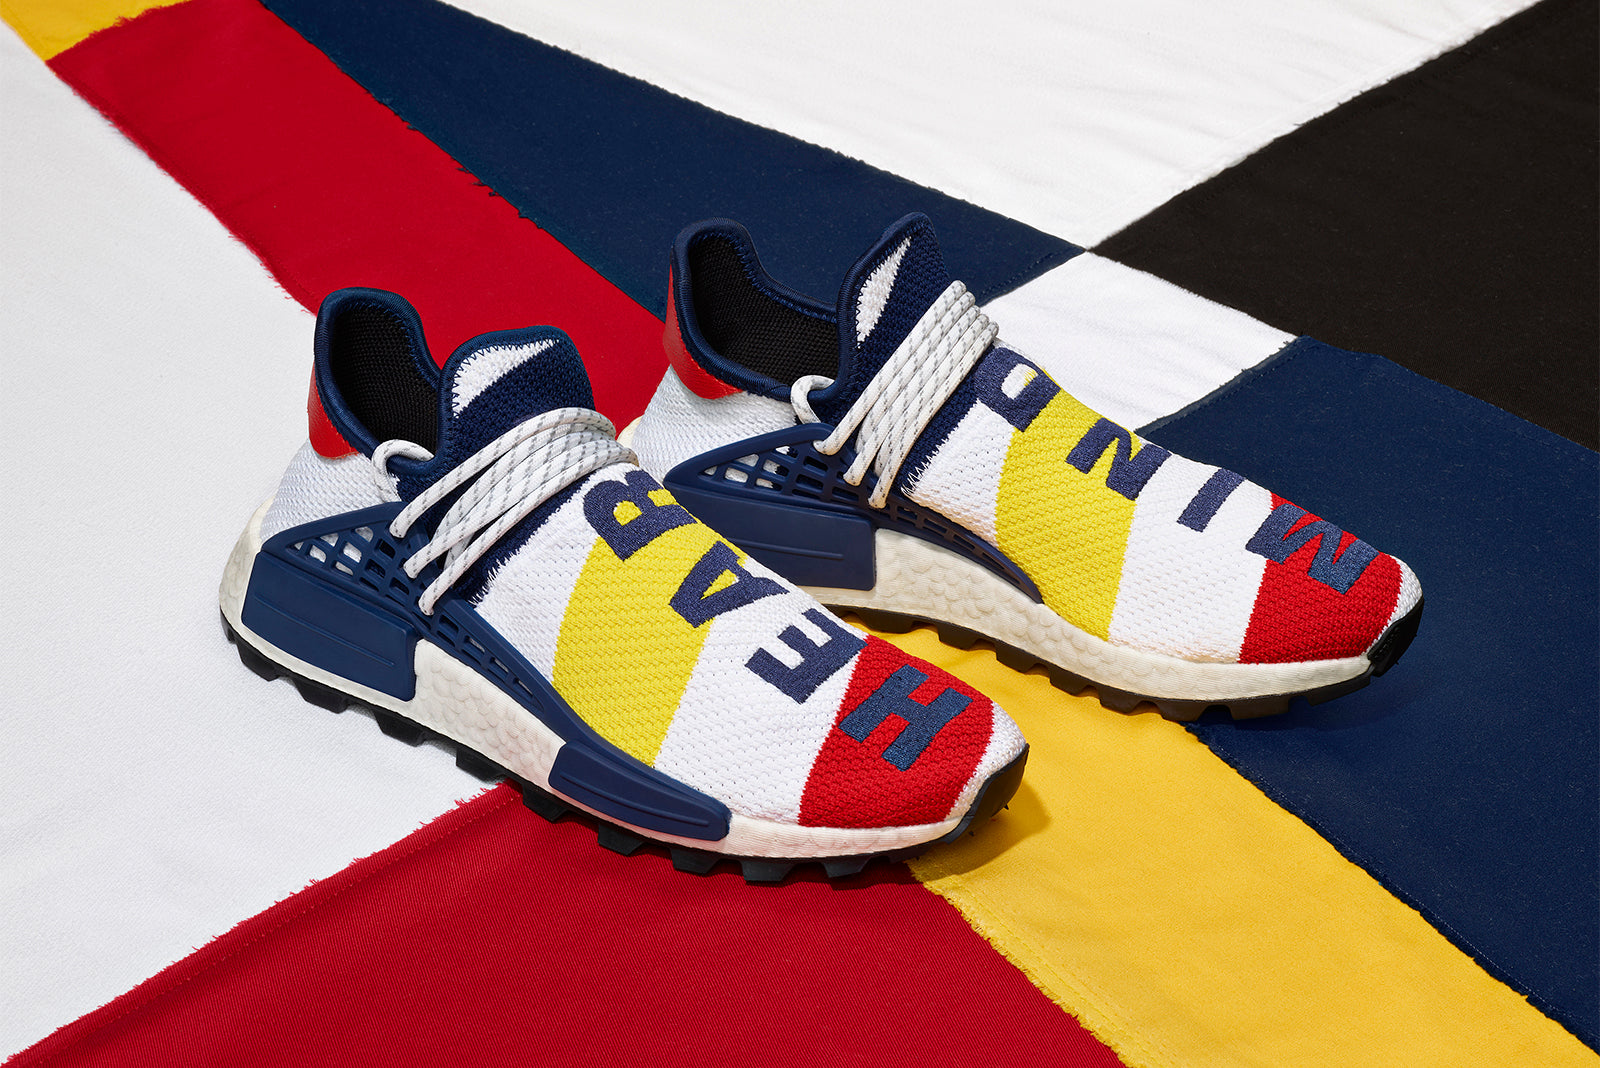 7da8ff603 adidas Originals HU NMD x Pharrell Williams x Billionaire Boys Club BB9544  Footwear White Scarlett Bright Yellow Price  £219.00